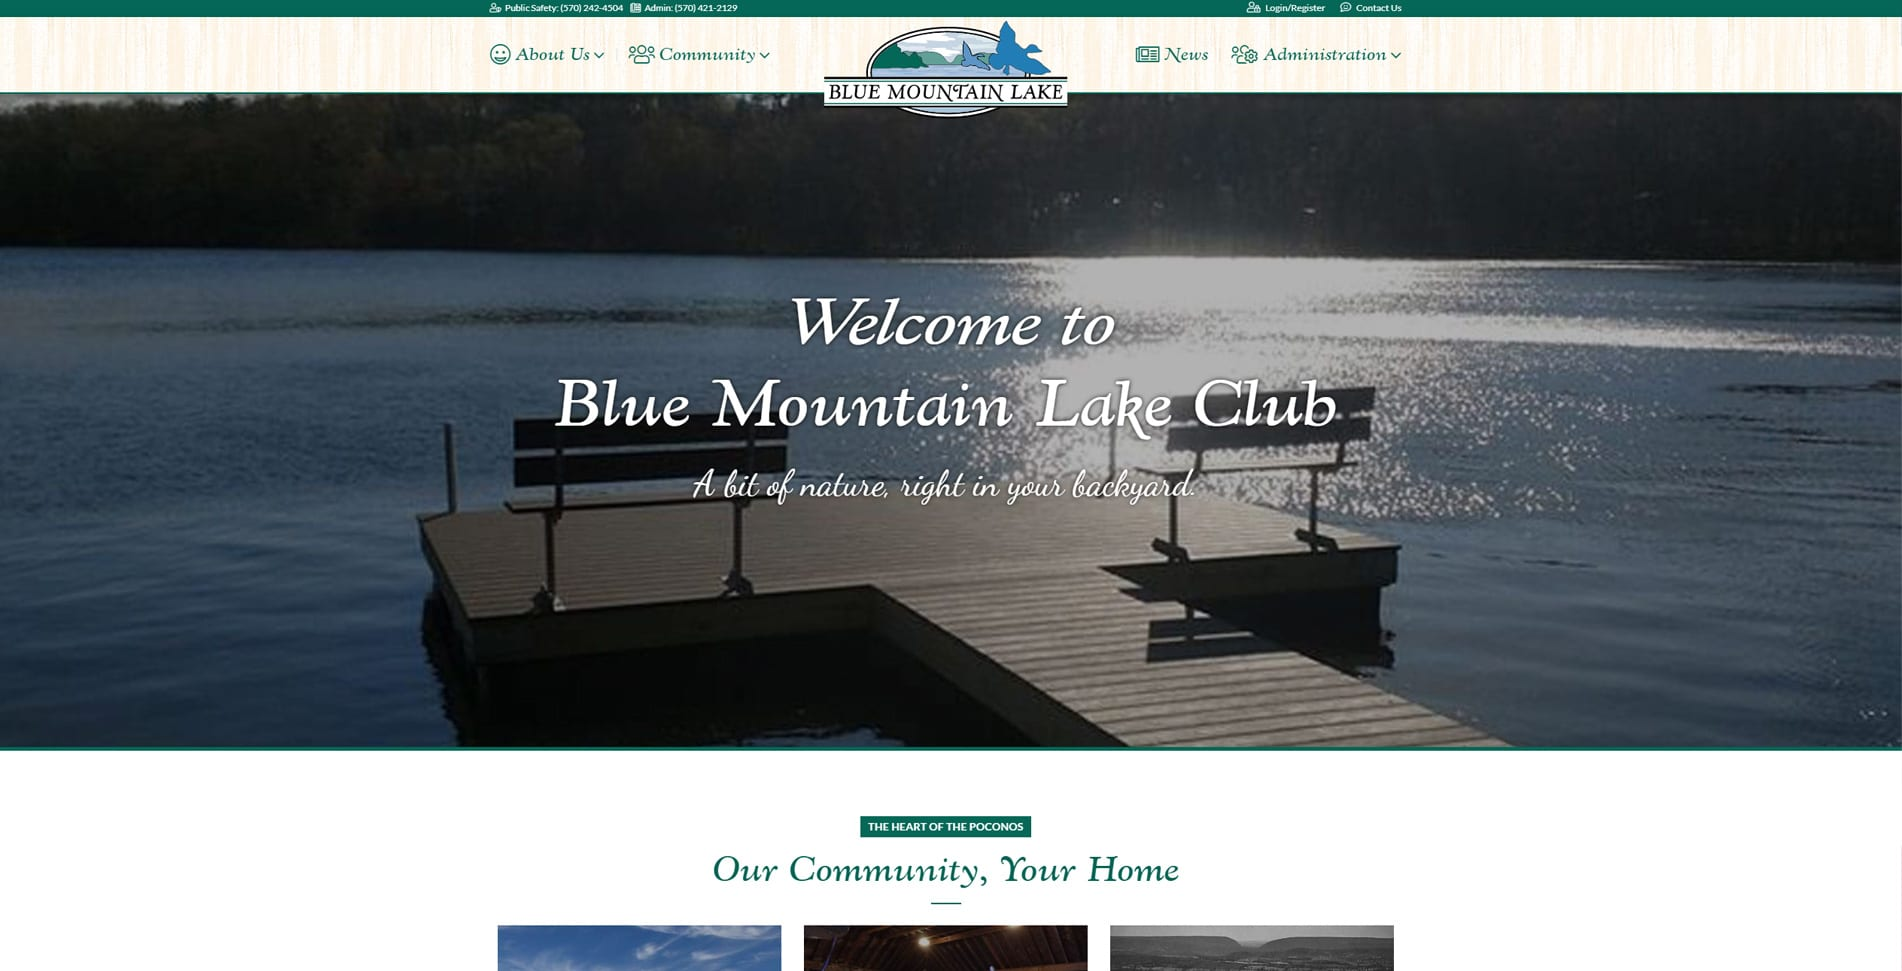 Blue Mountain Lake Club - East Stroudsburg, PA